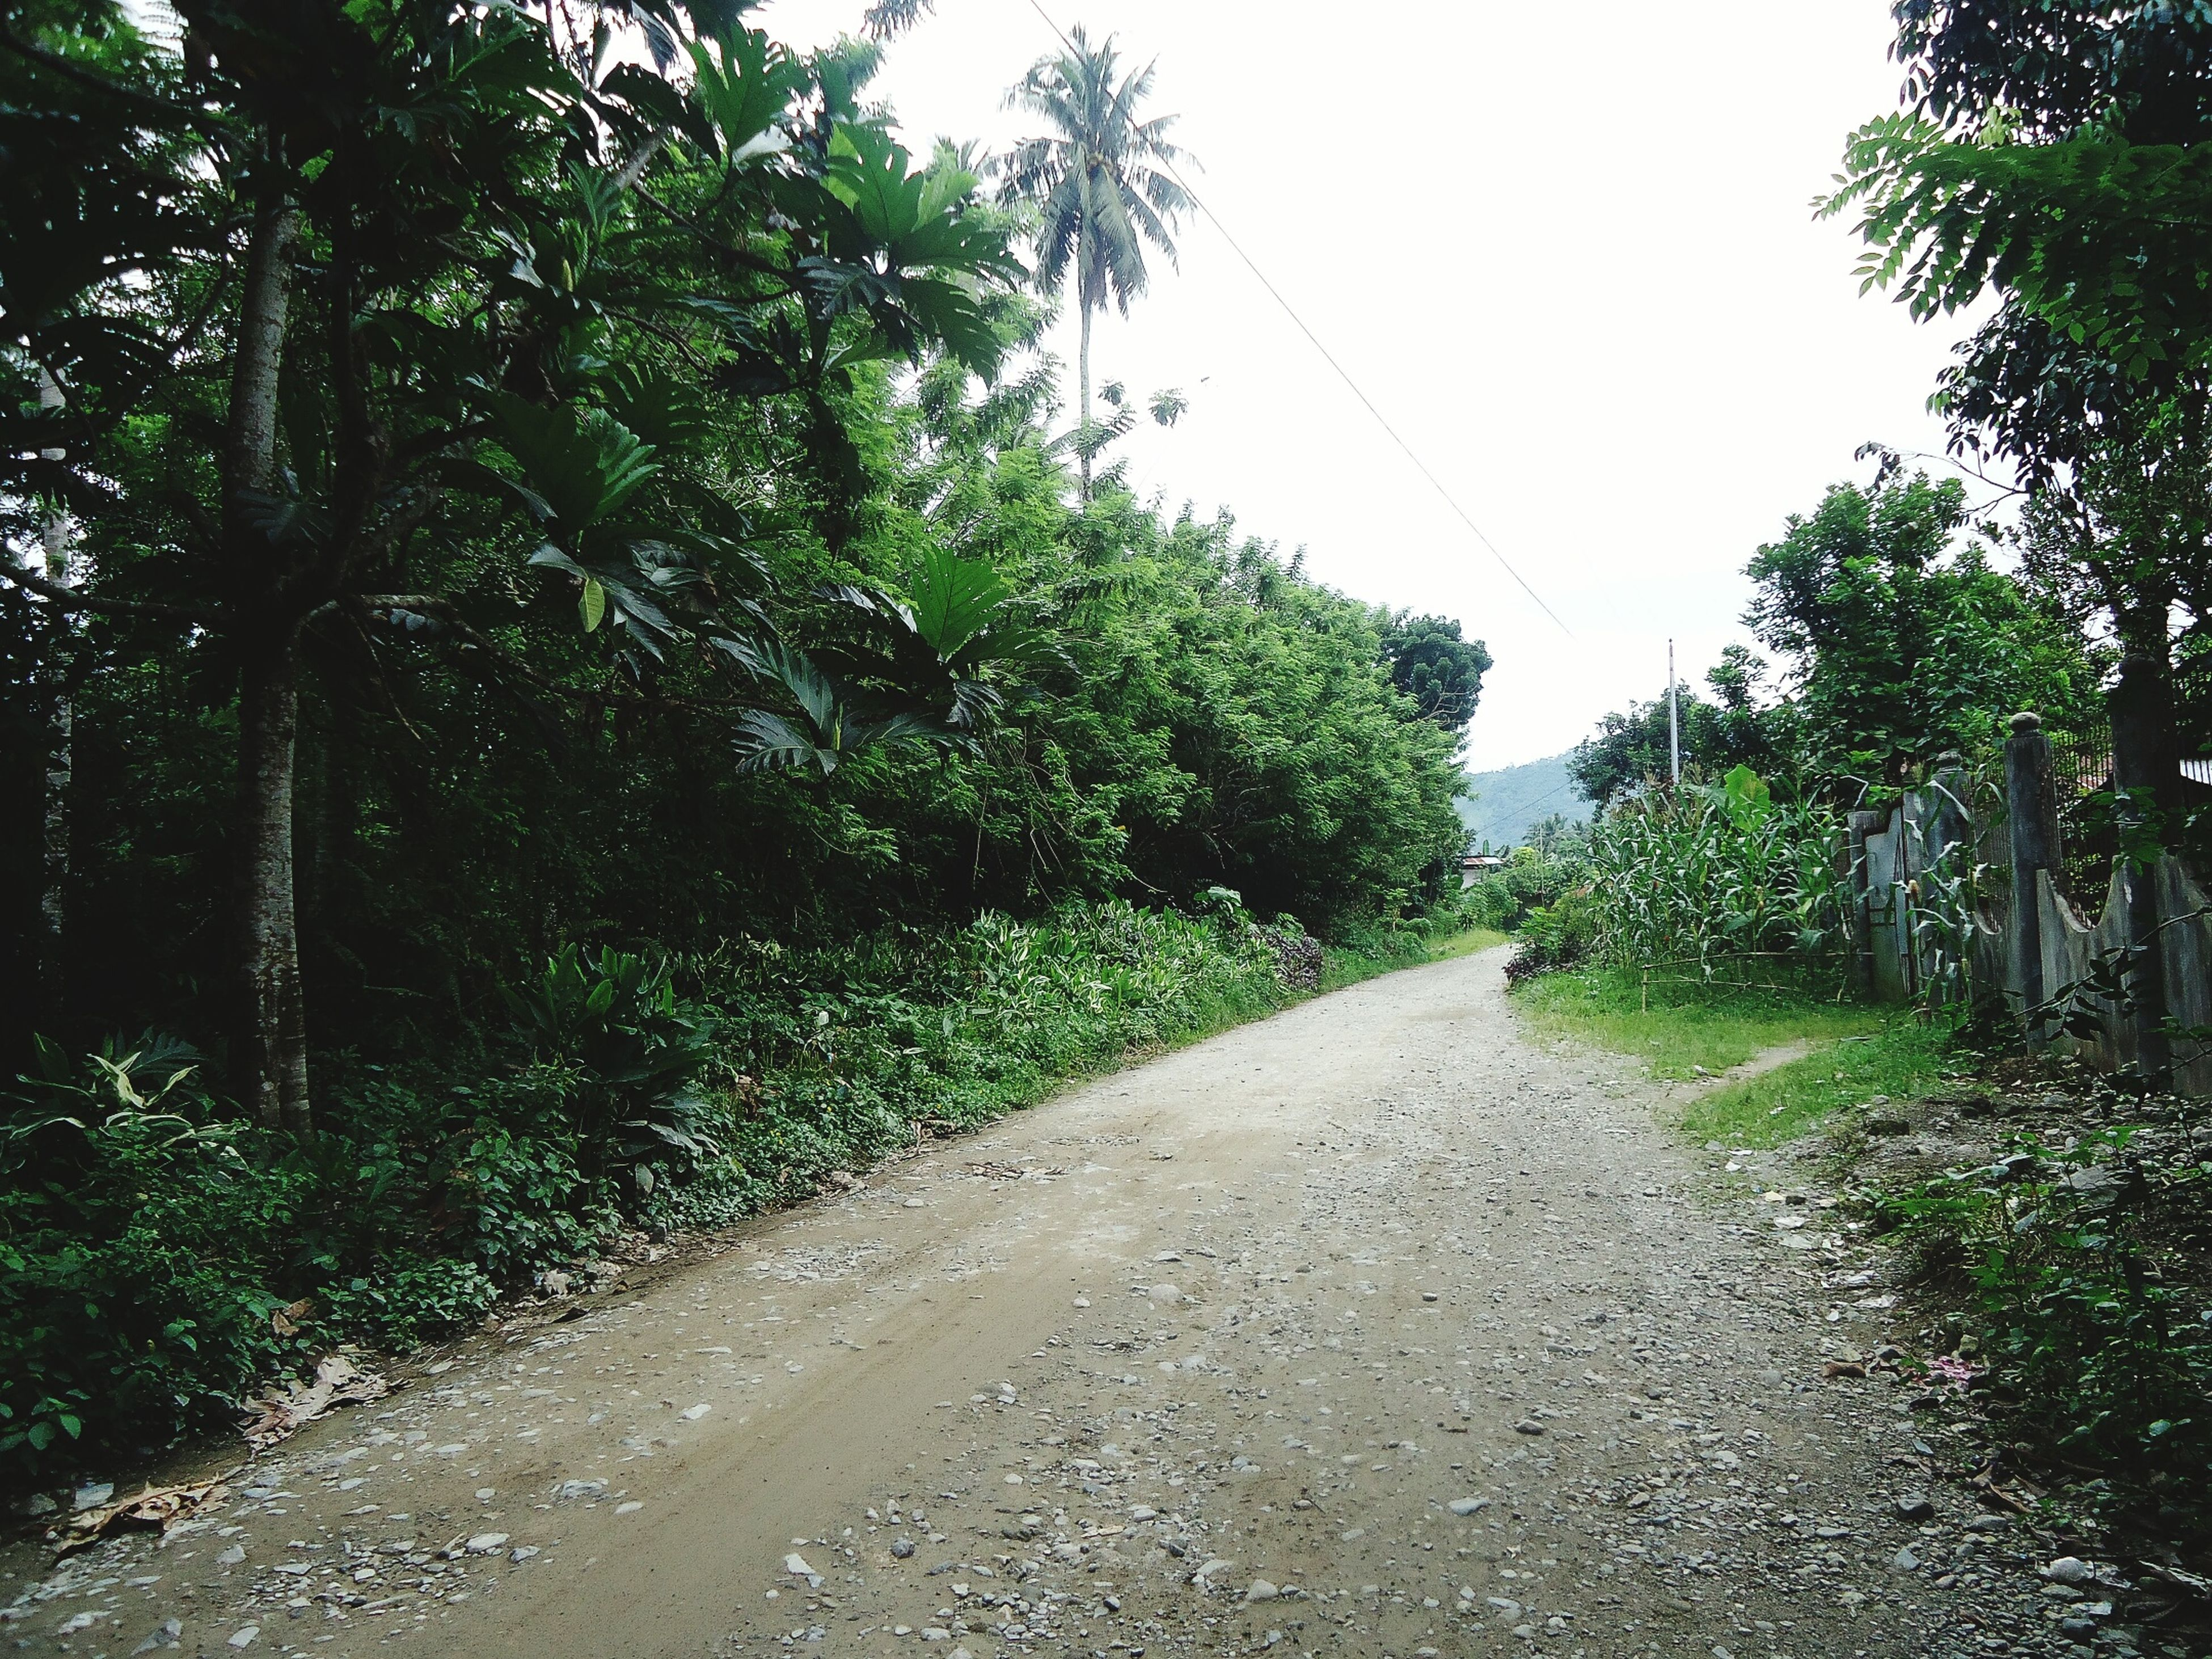 Tree Outdoors No People Nature Day The Way Forward Growth Road Beauty In Nature Sky Simple Village Life